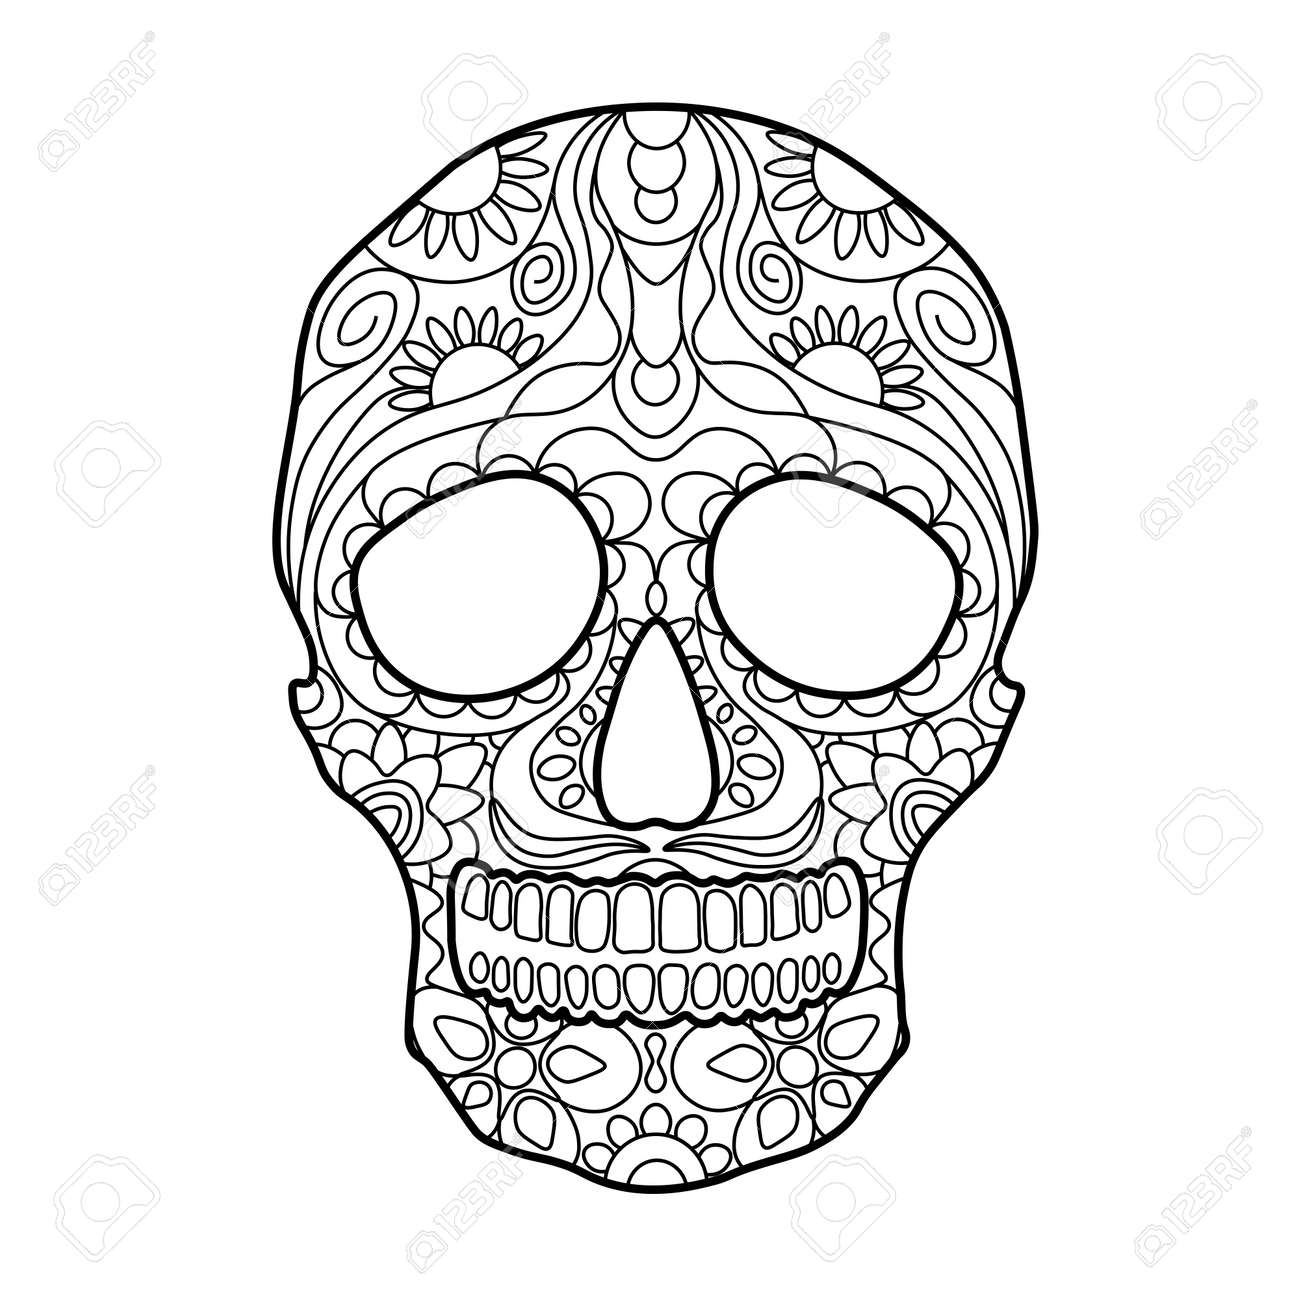 Hunan Skull Coloring Book For Adults Vector Illustration Anti